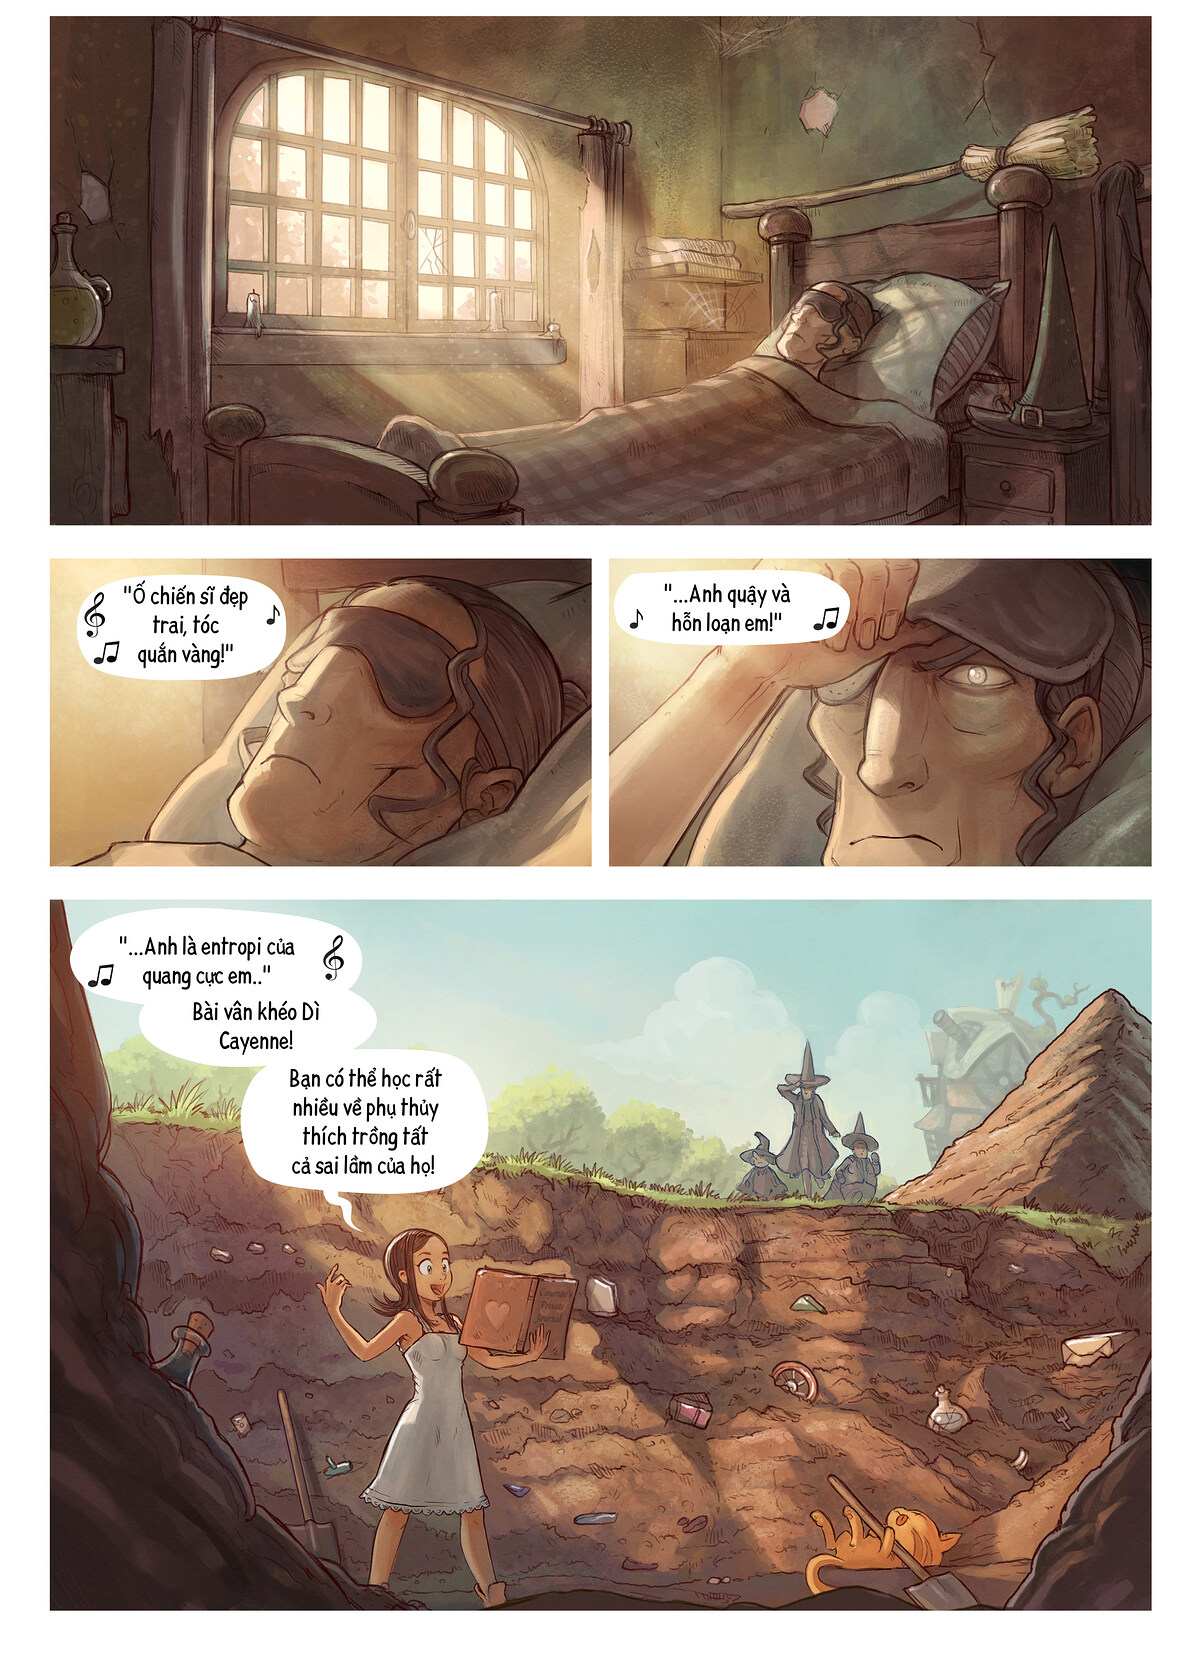 A webcomic page of Pepper&Carrot, Tập 19 [vi], trang 4